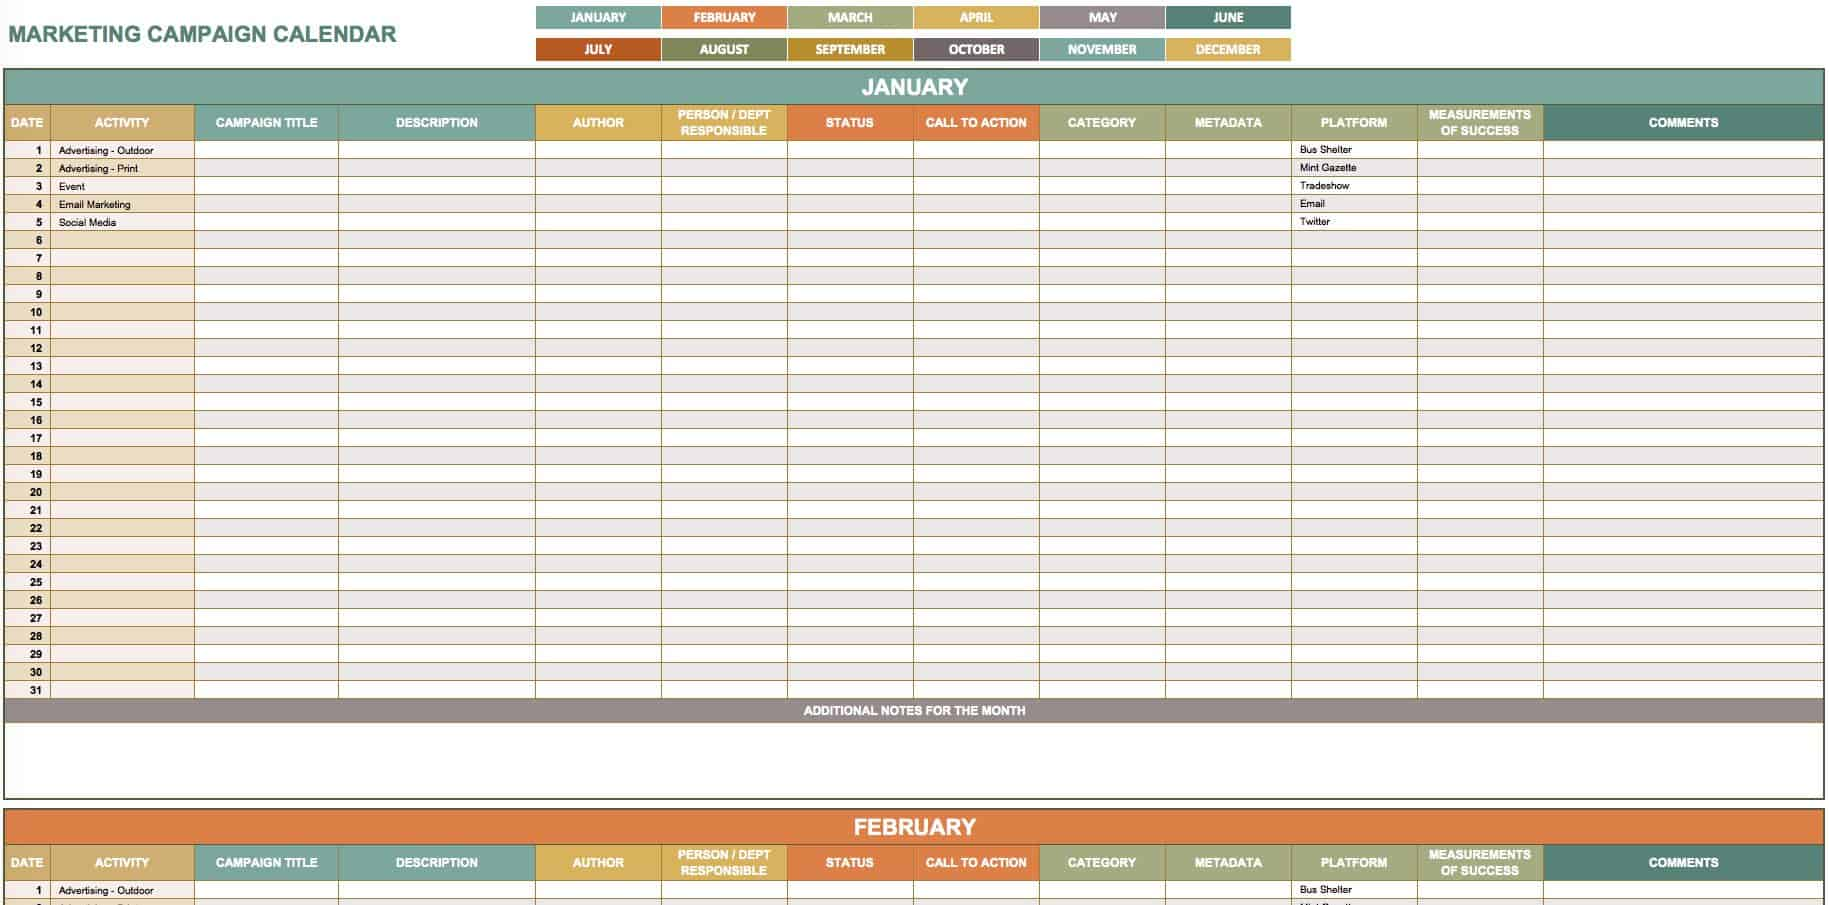 Free Marketing Calendar Templates For Excel Smartsheet - Public relations calendar template